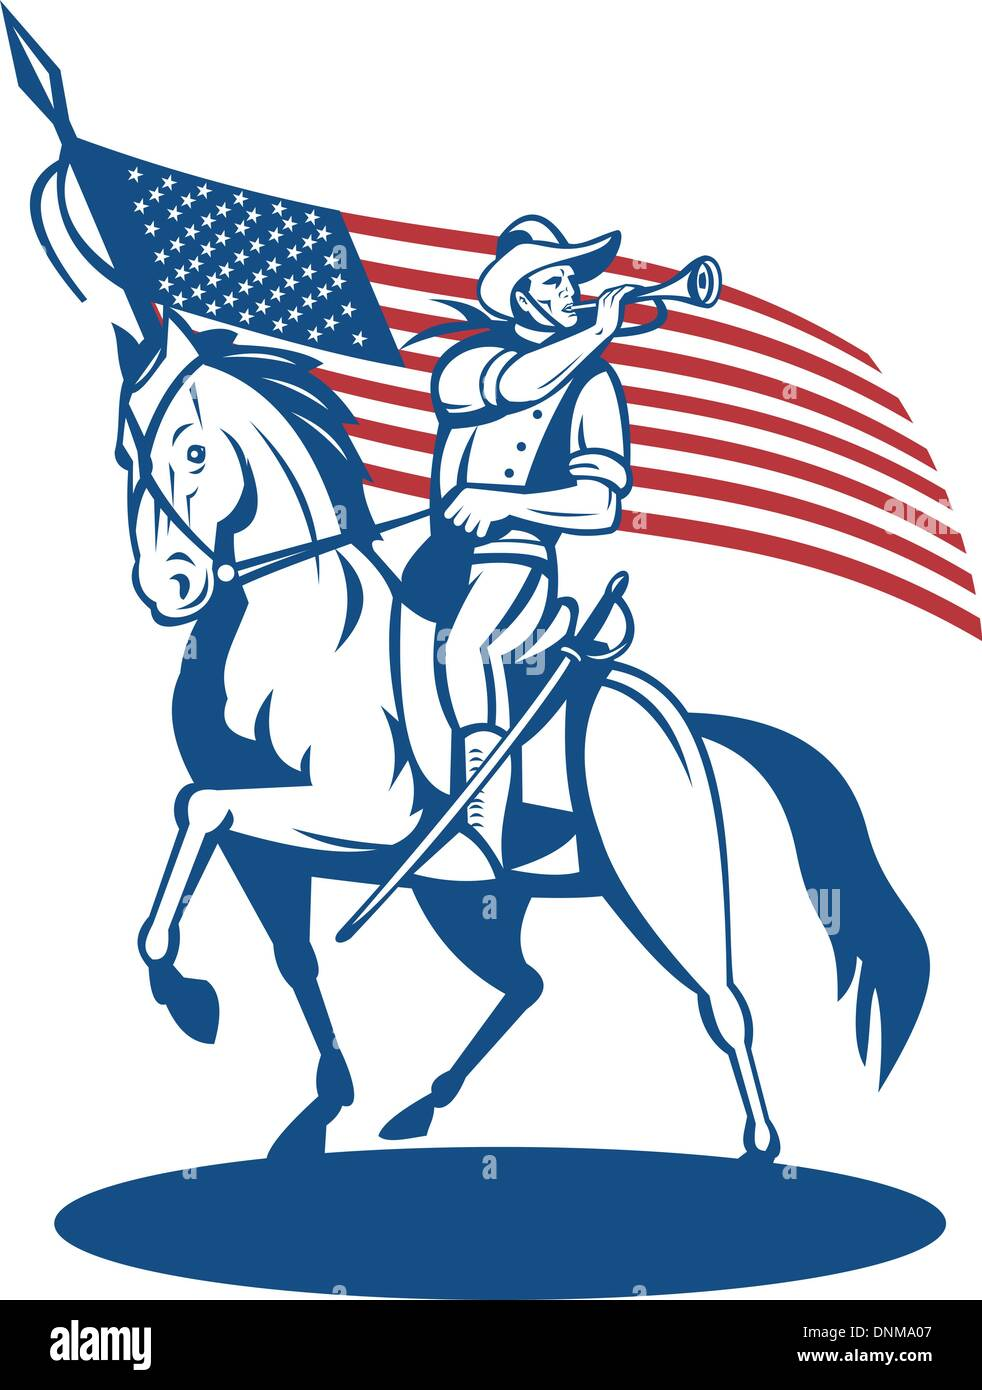 illustration of a American cavalry riding horse blowing a bugle and stars and stripes flag in background - Stock Vector